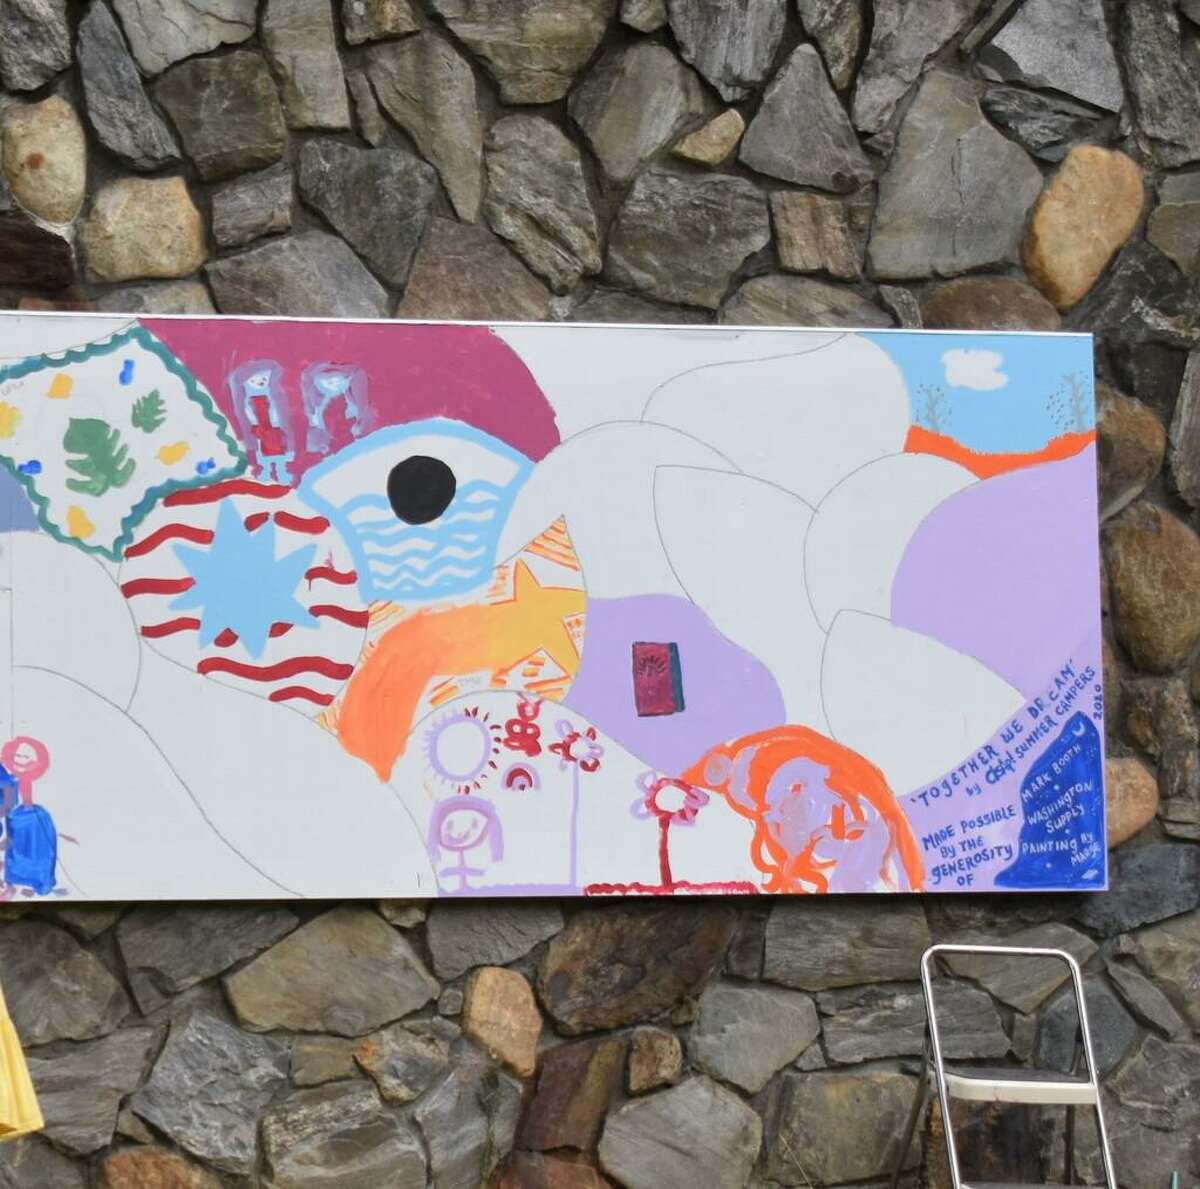 Campers at theASAP! Camp program painted Murals in Torrington and Washington.